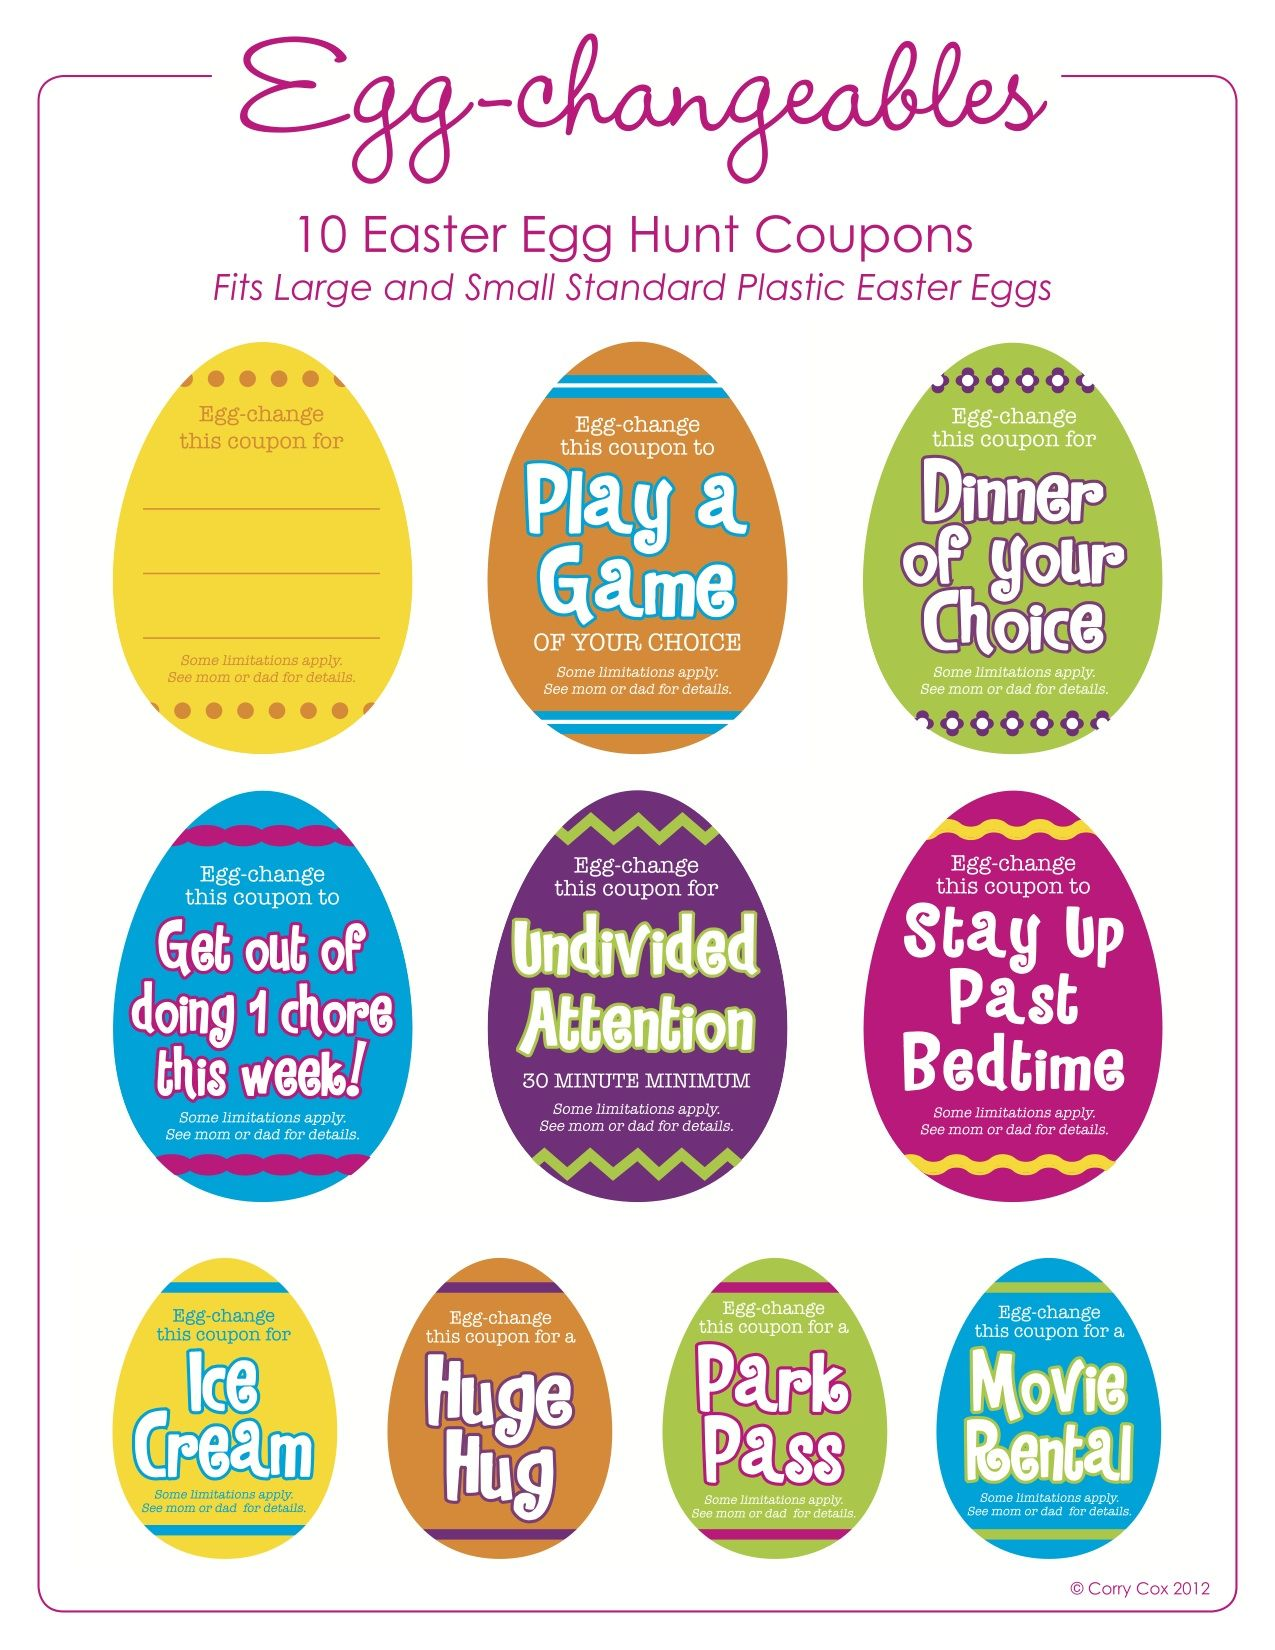 Fun Things To Put In Your Egg Hunt Easter Egg Fillers